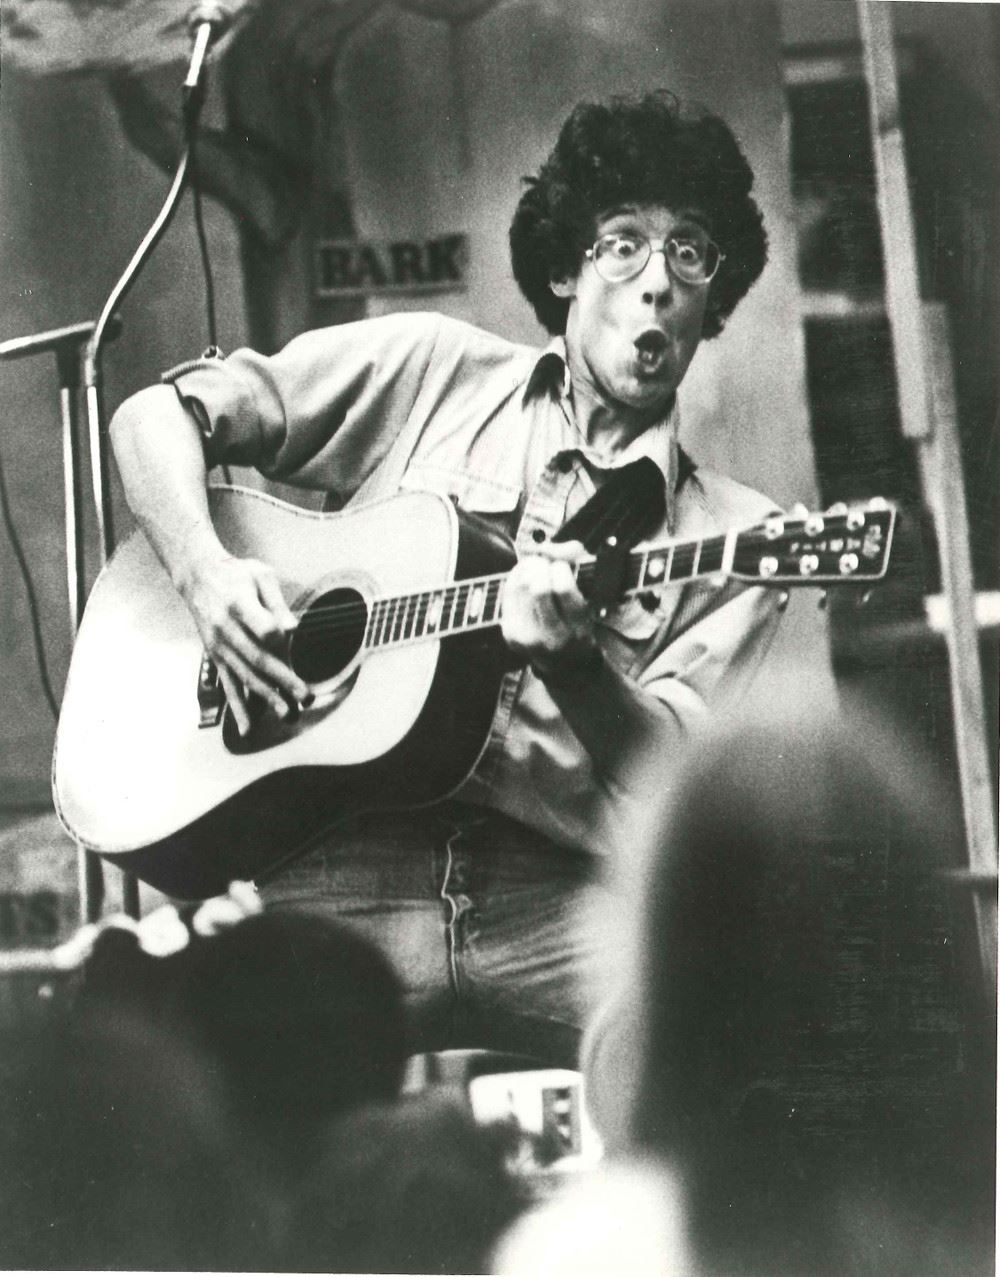 Photograph of an unidentified male musician performing with a guitar